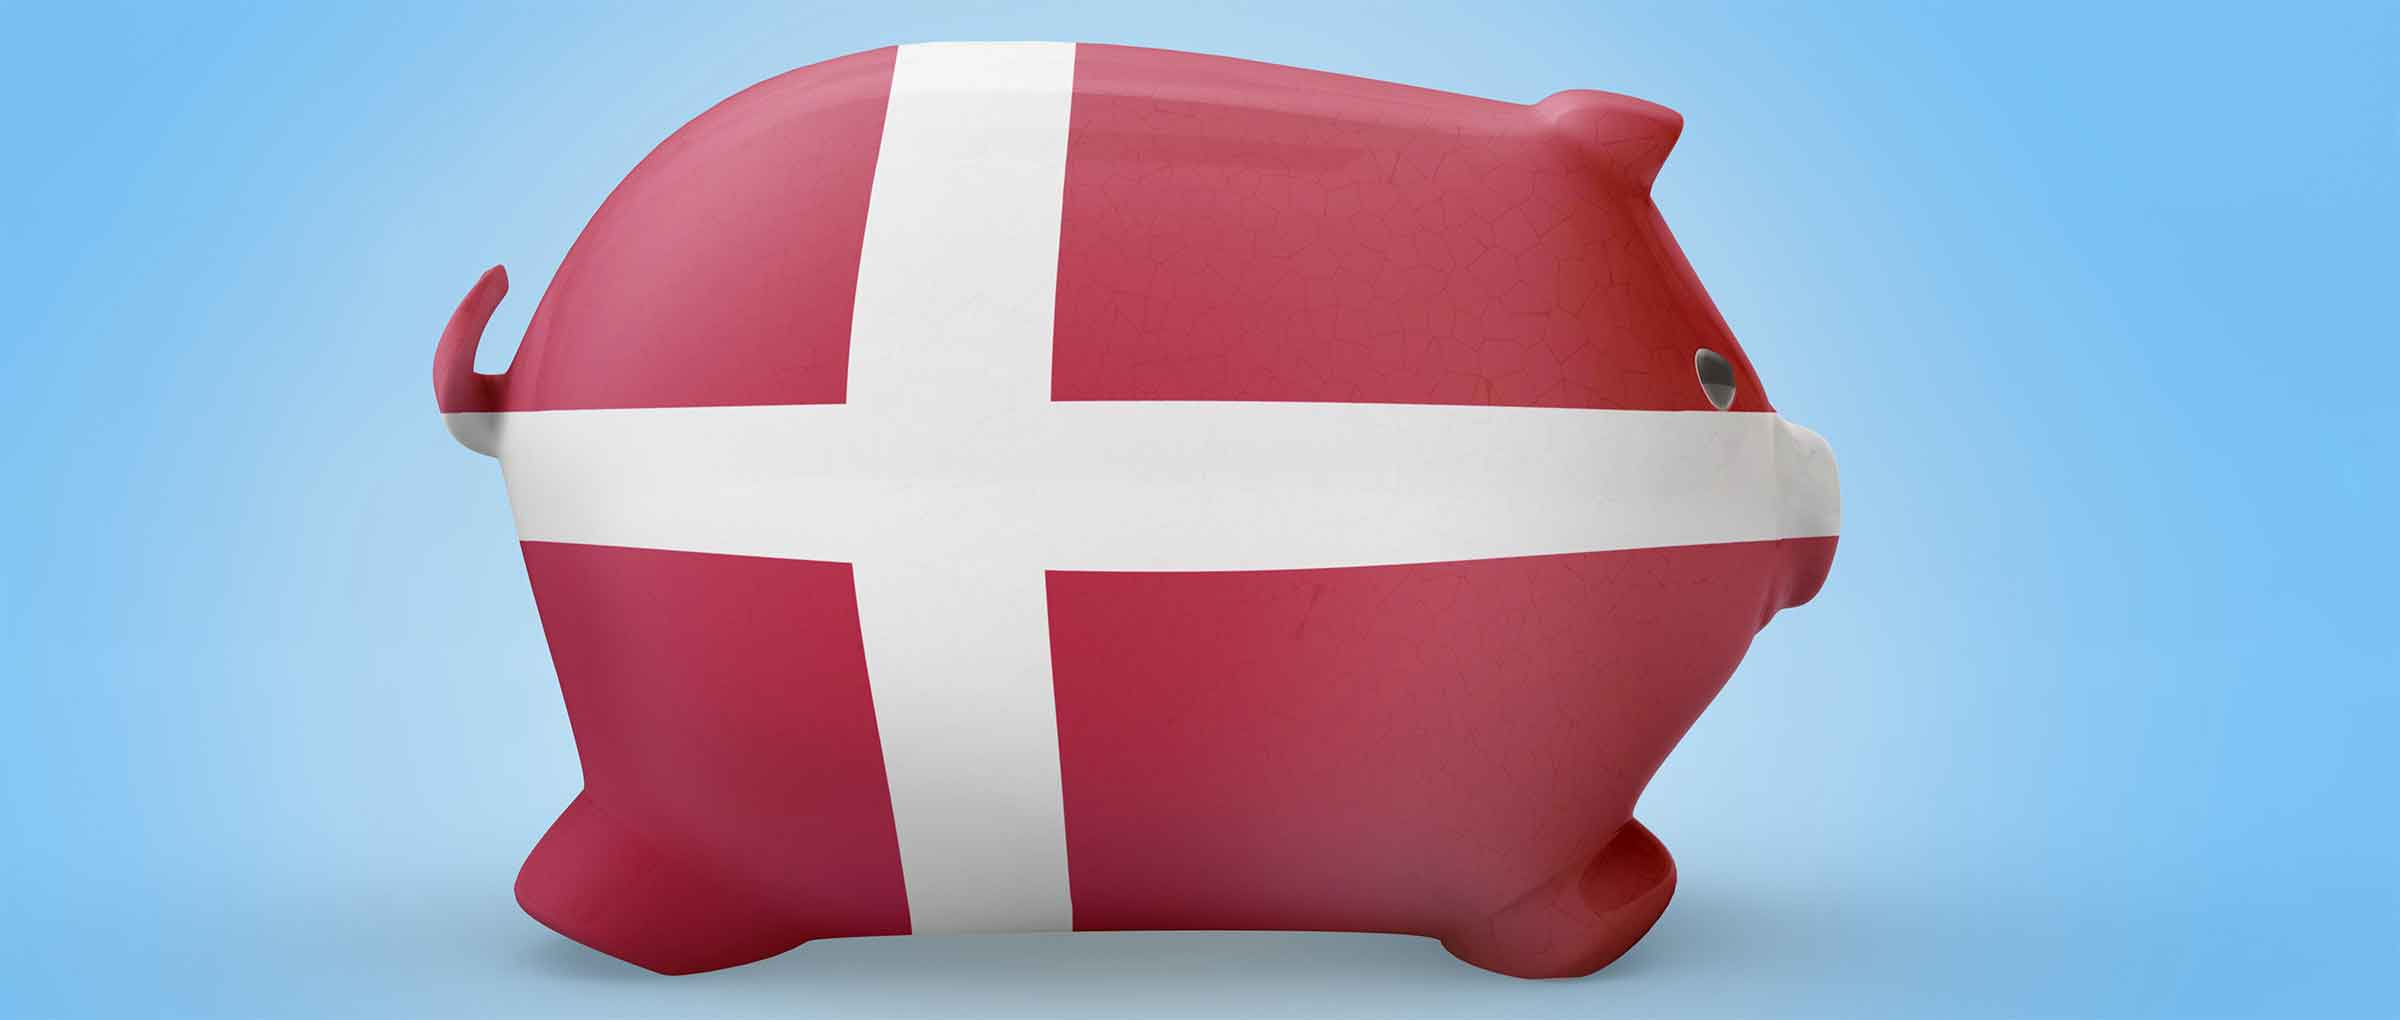 Donor-egg IVF cost in Denmark